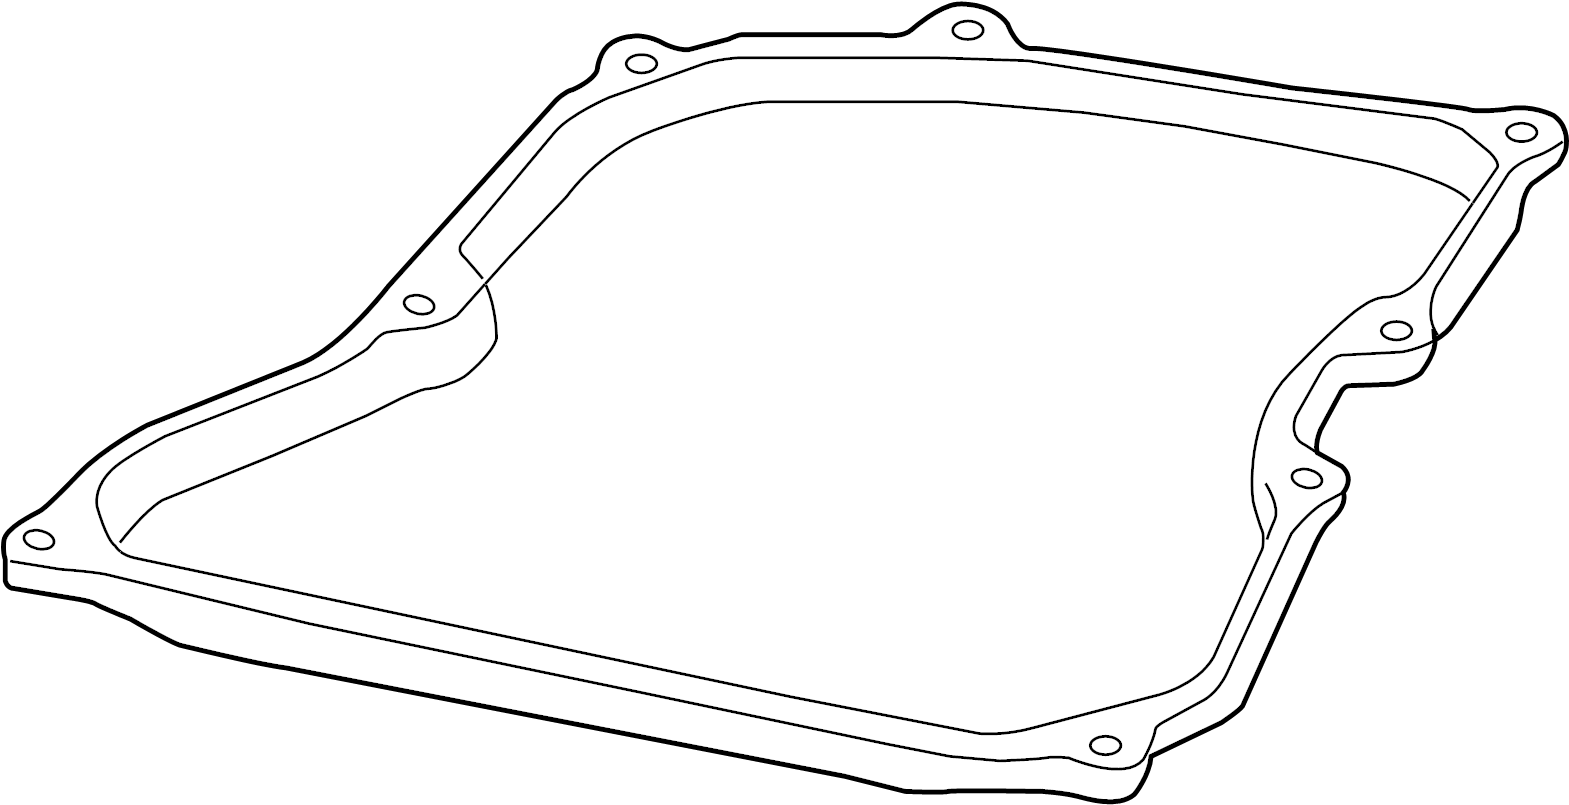 Volkswagen Jetta Automatic Transmission Oil Pan